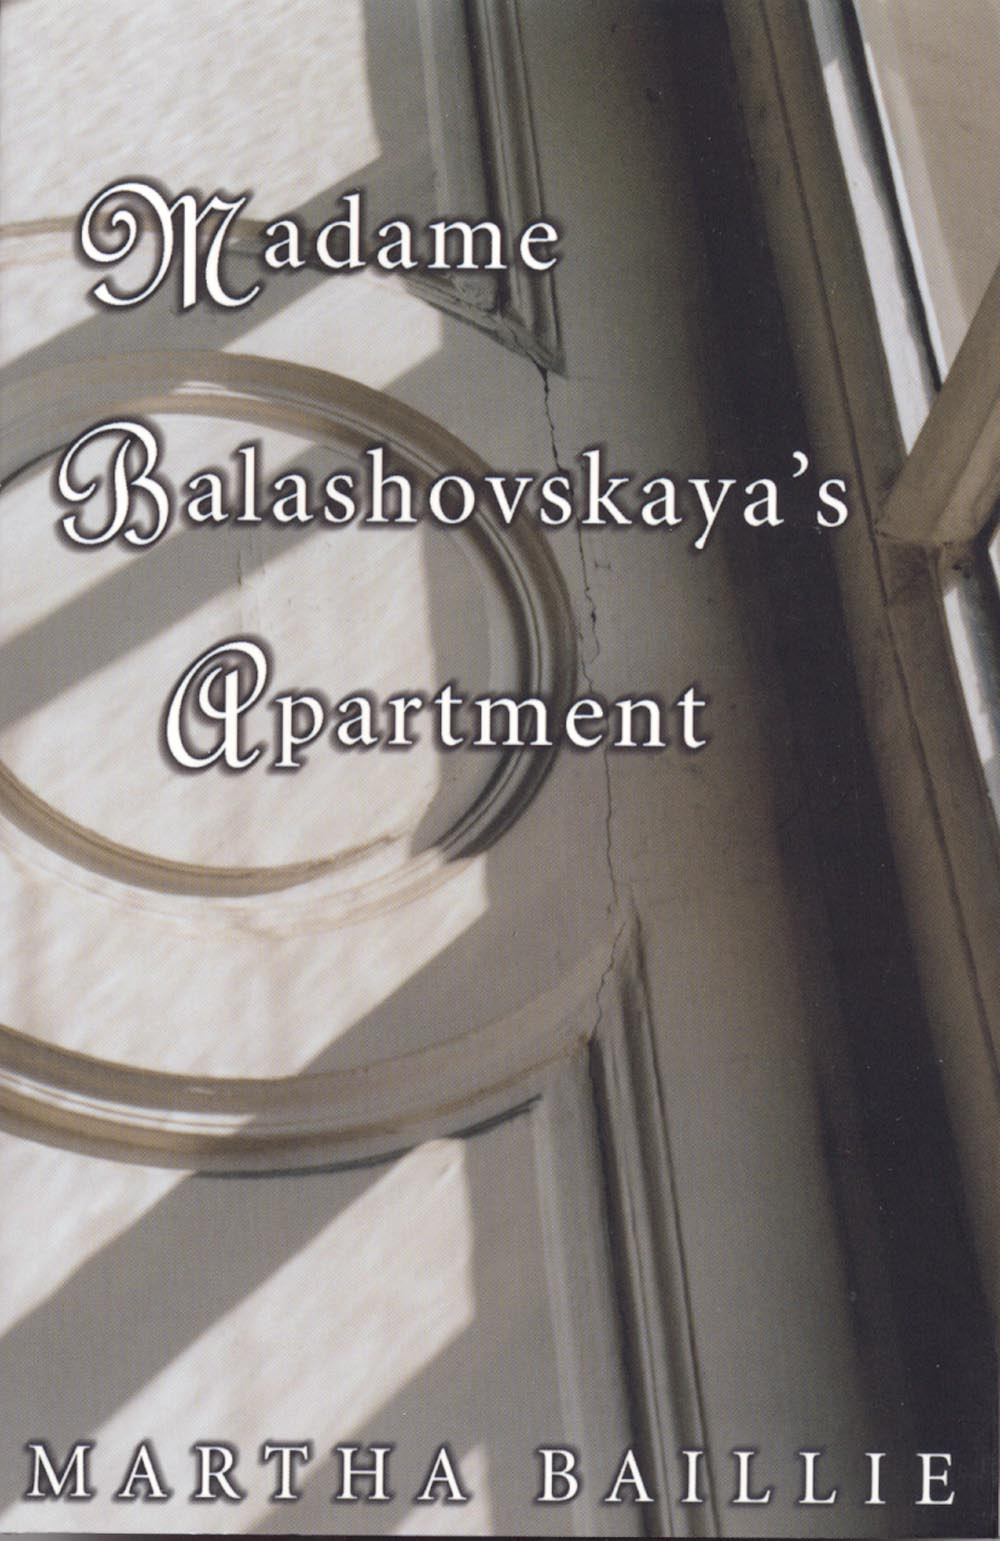 Madame Balashovskaya's Apartment by Martha Baillie